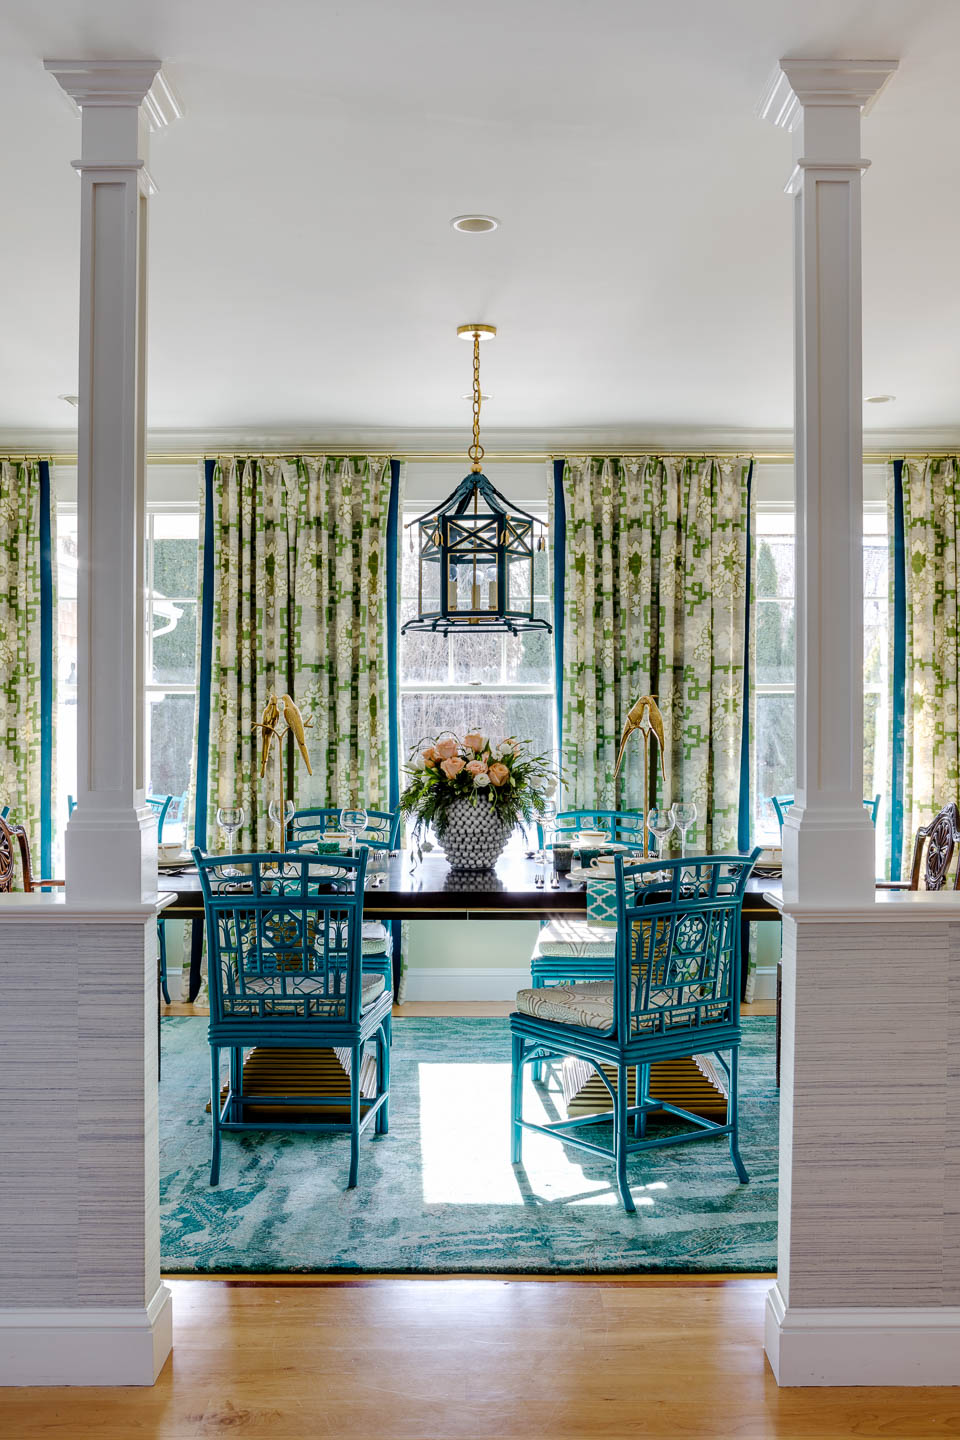 Digs, Digs Design, Matunuck, Matunuck Beach, Beach Design, Rhode Island Interior Design, Interior Design, Renovation, Dining Room, Dining Room Design, Coastal Living, Turquoise, Dining Room Decor, Table Decor